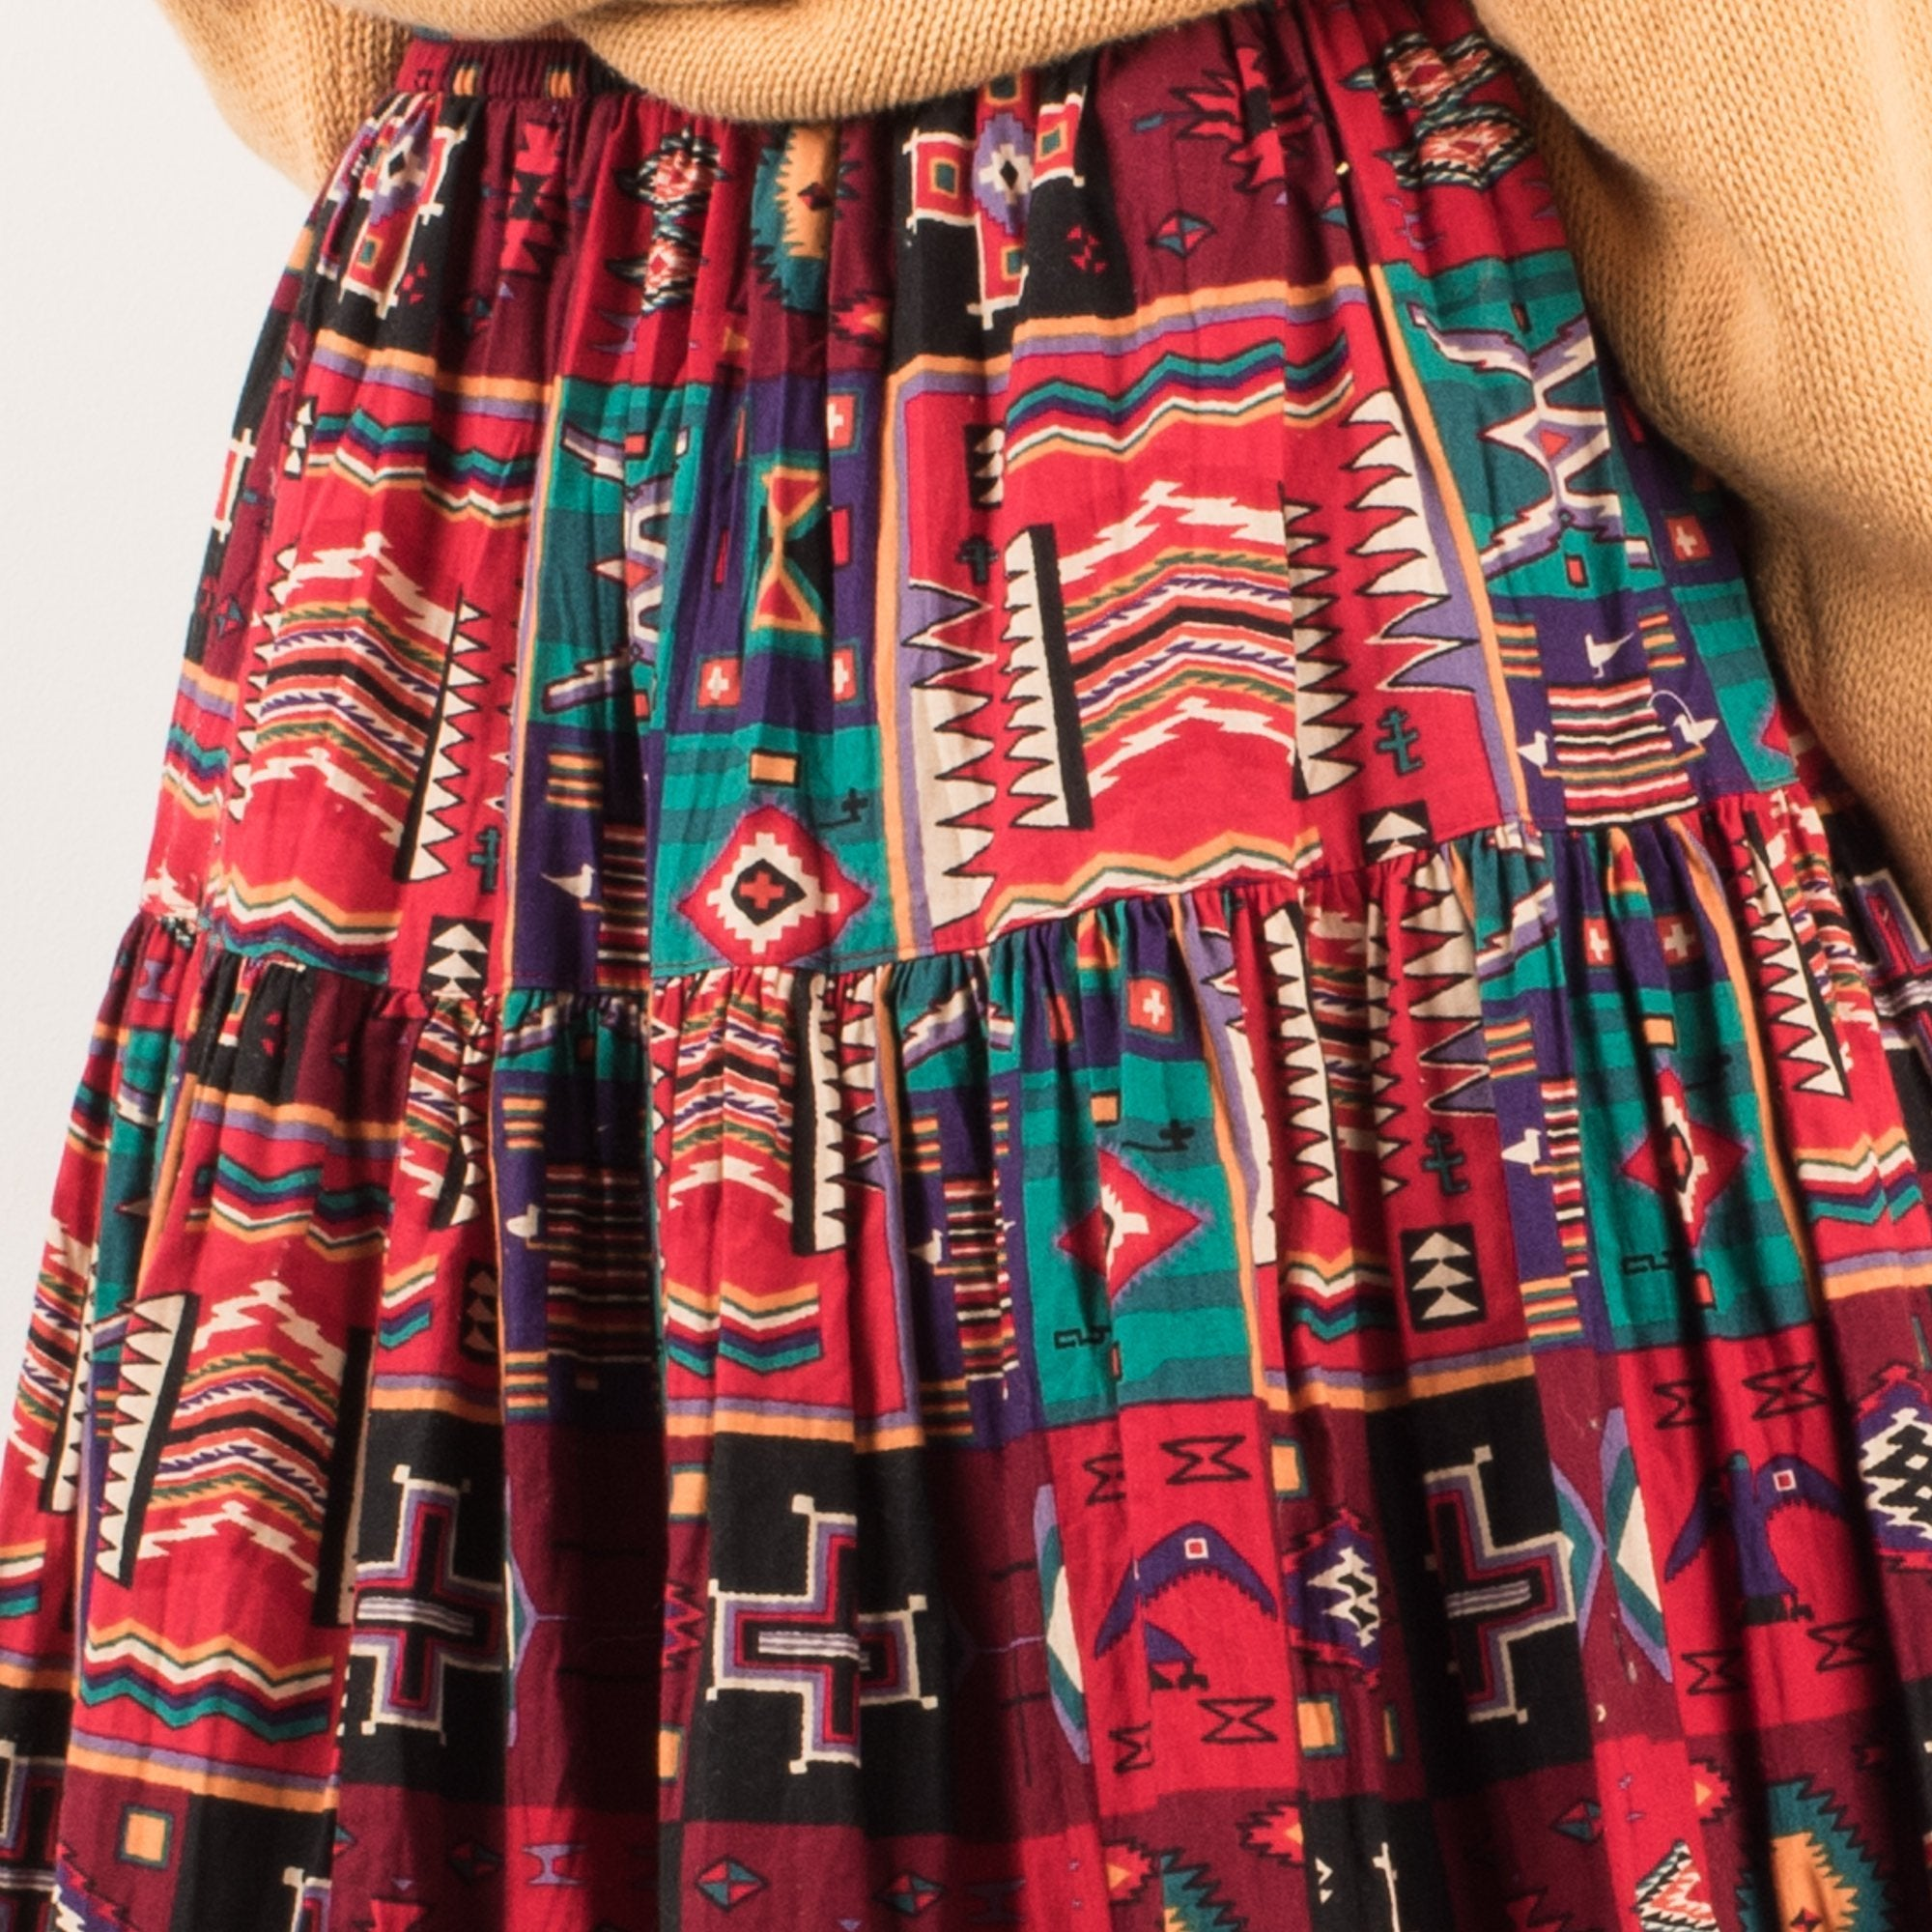 Vintage Colorful Tribal Aztec Gathered Maxi Skirt / XS/S - Closed Caption